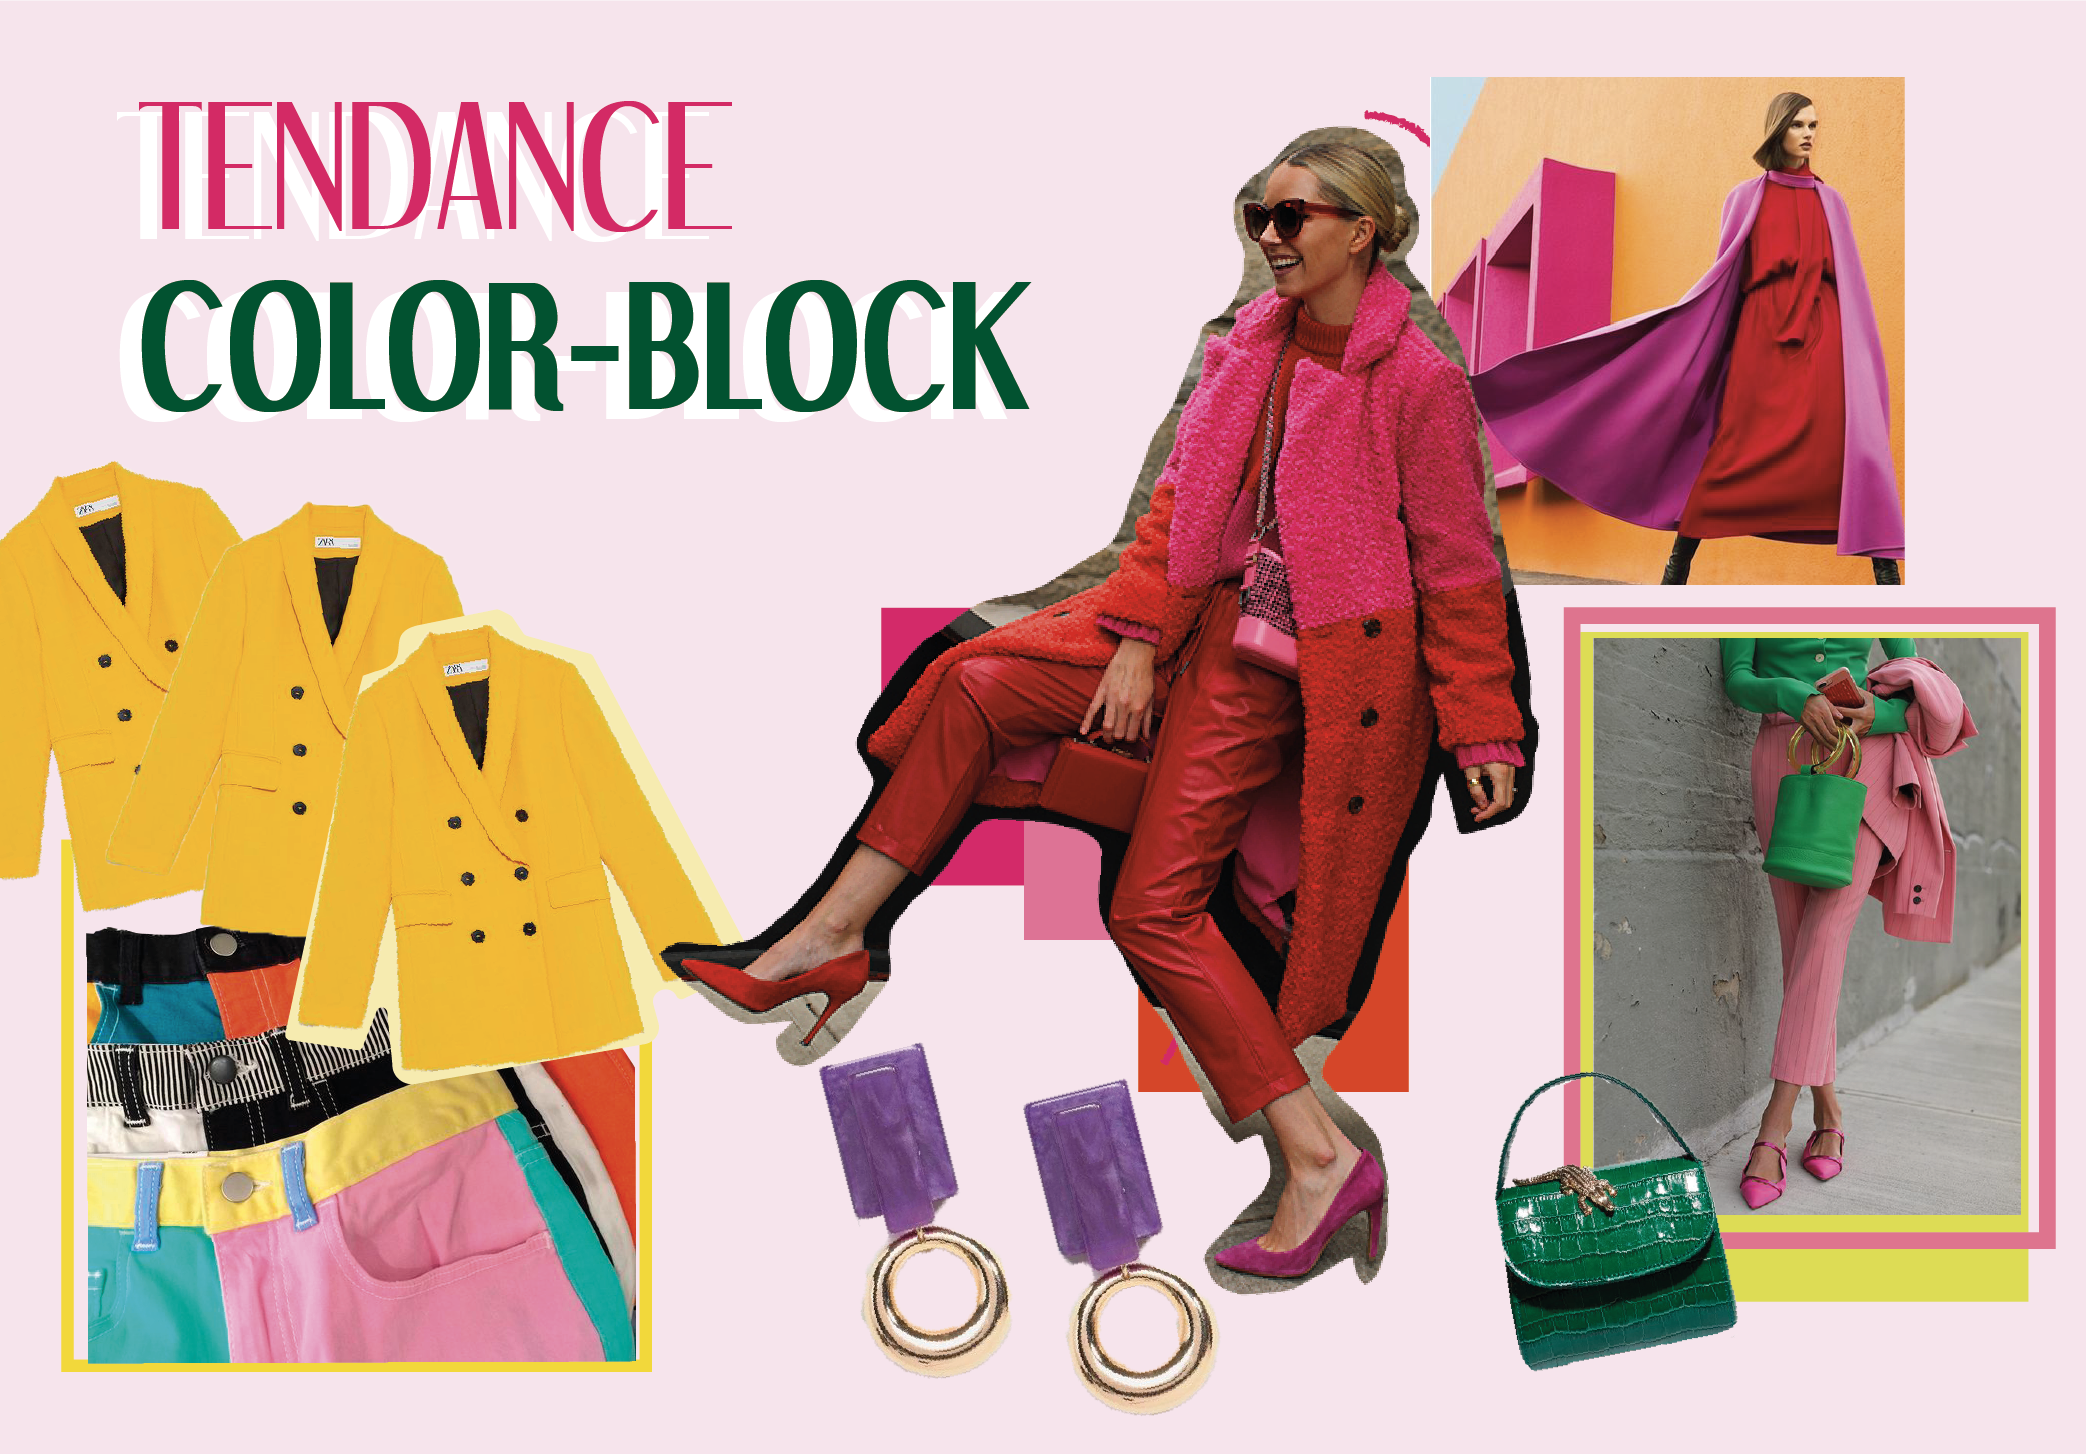 #1 tendance 3 looks : le color-block